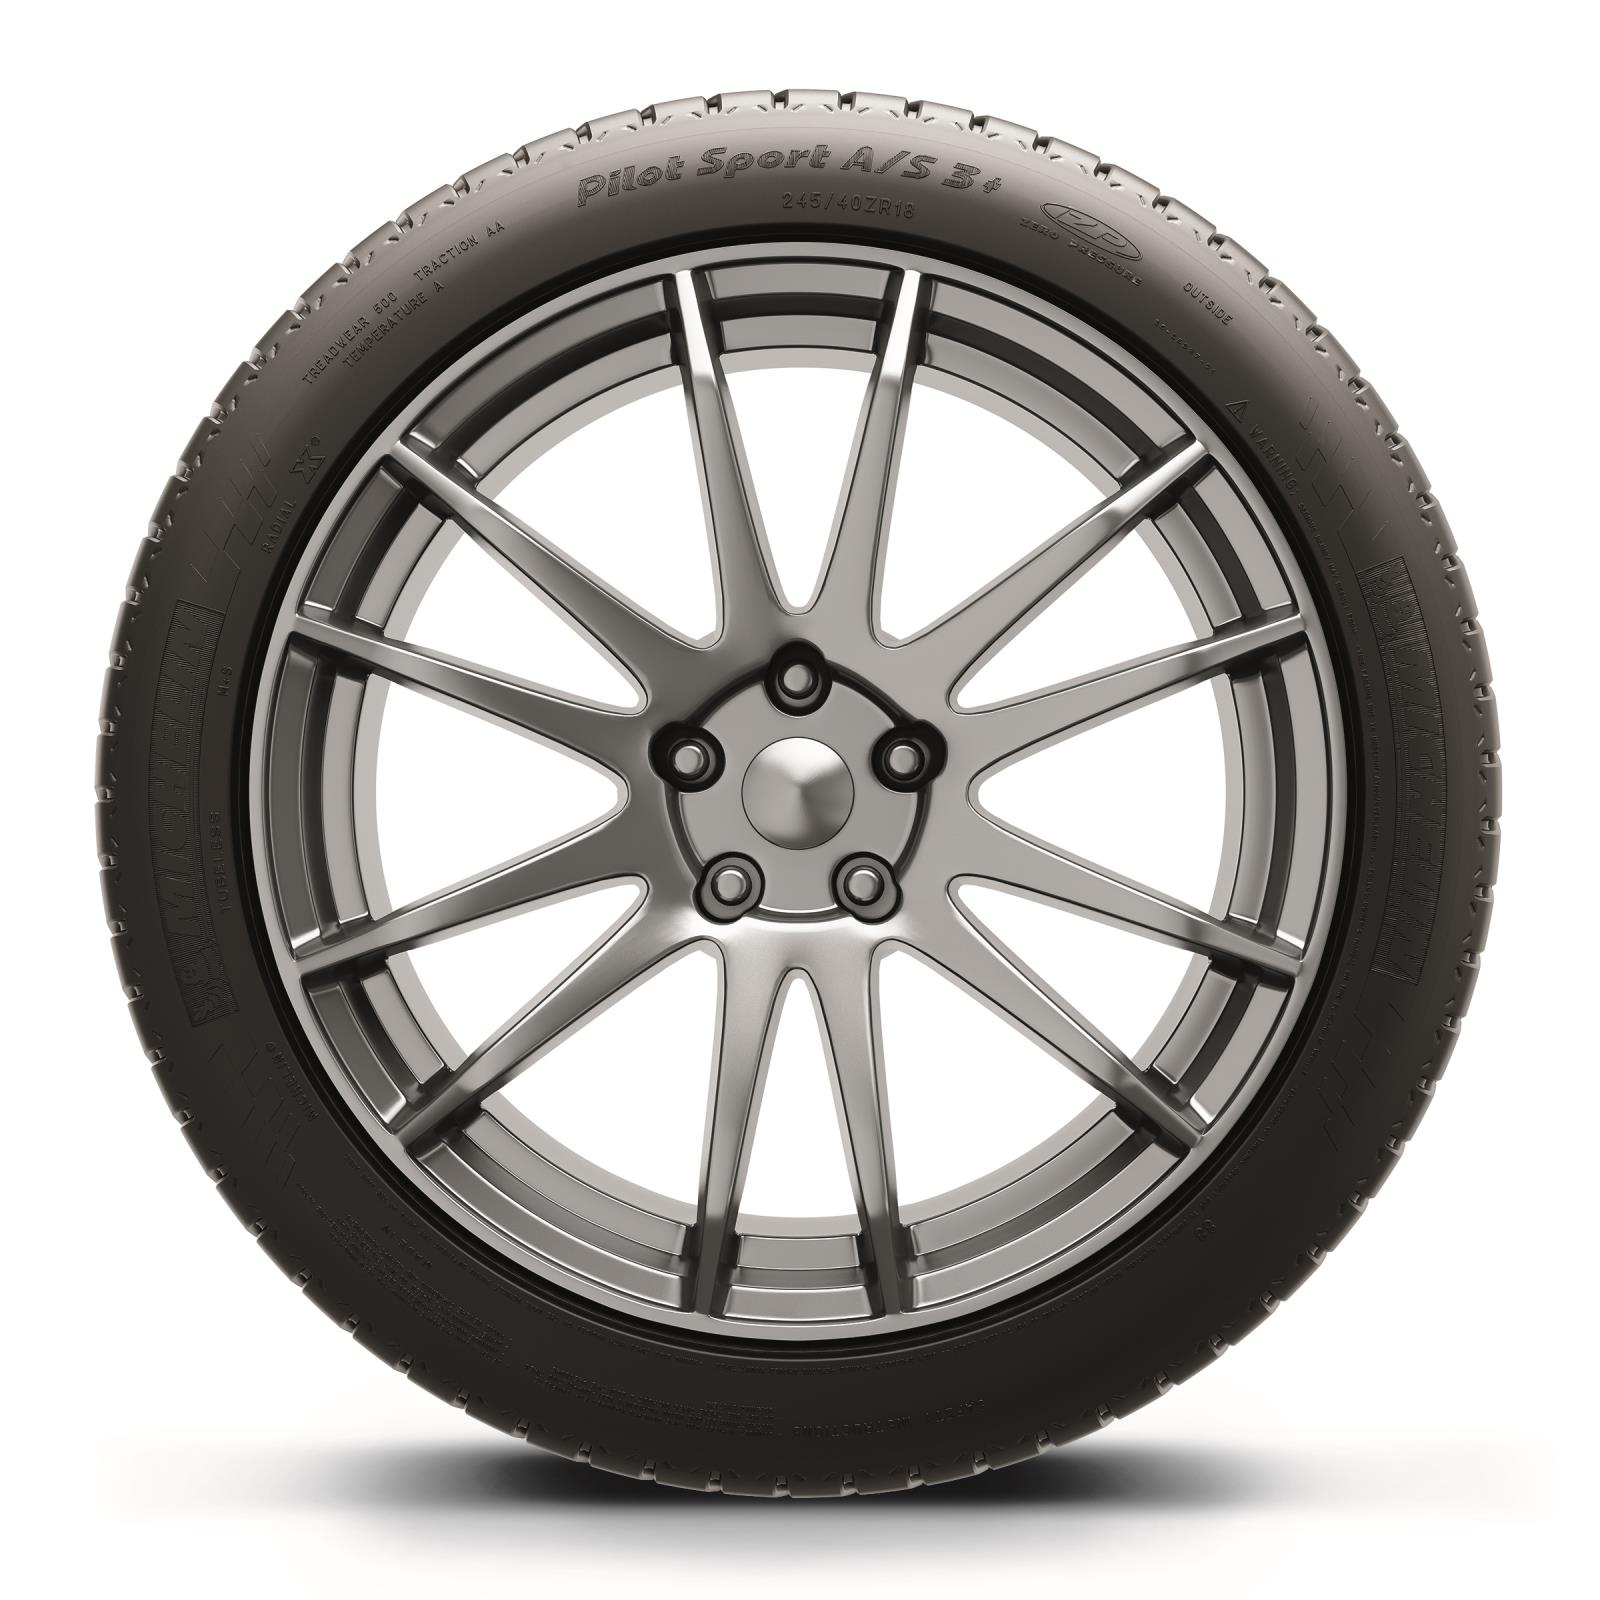 Michelin Introduces New Pilot Sport All Season 3 ™ Tire at North